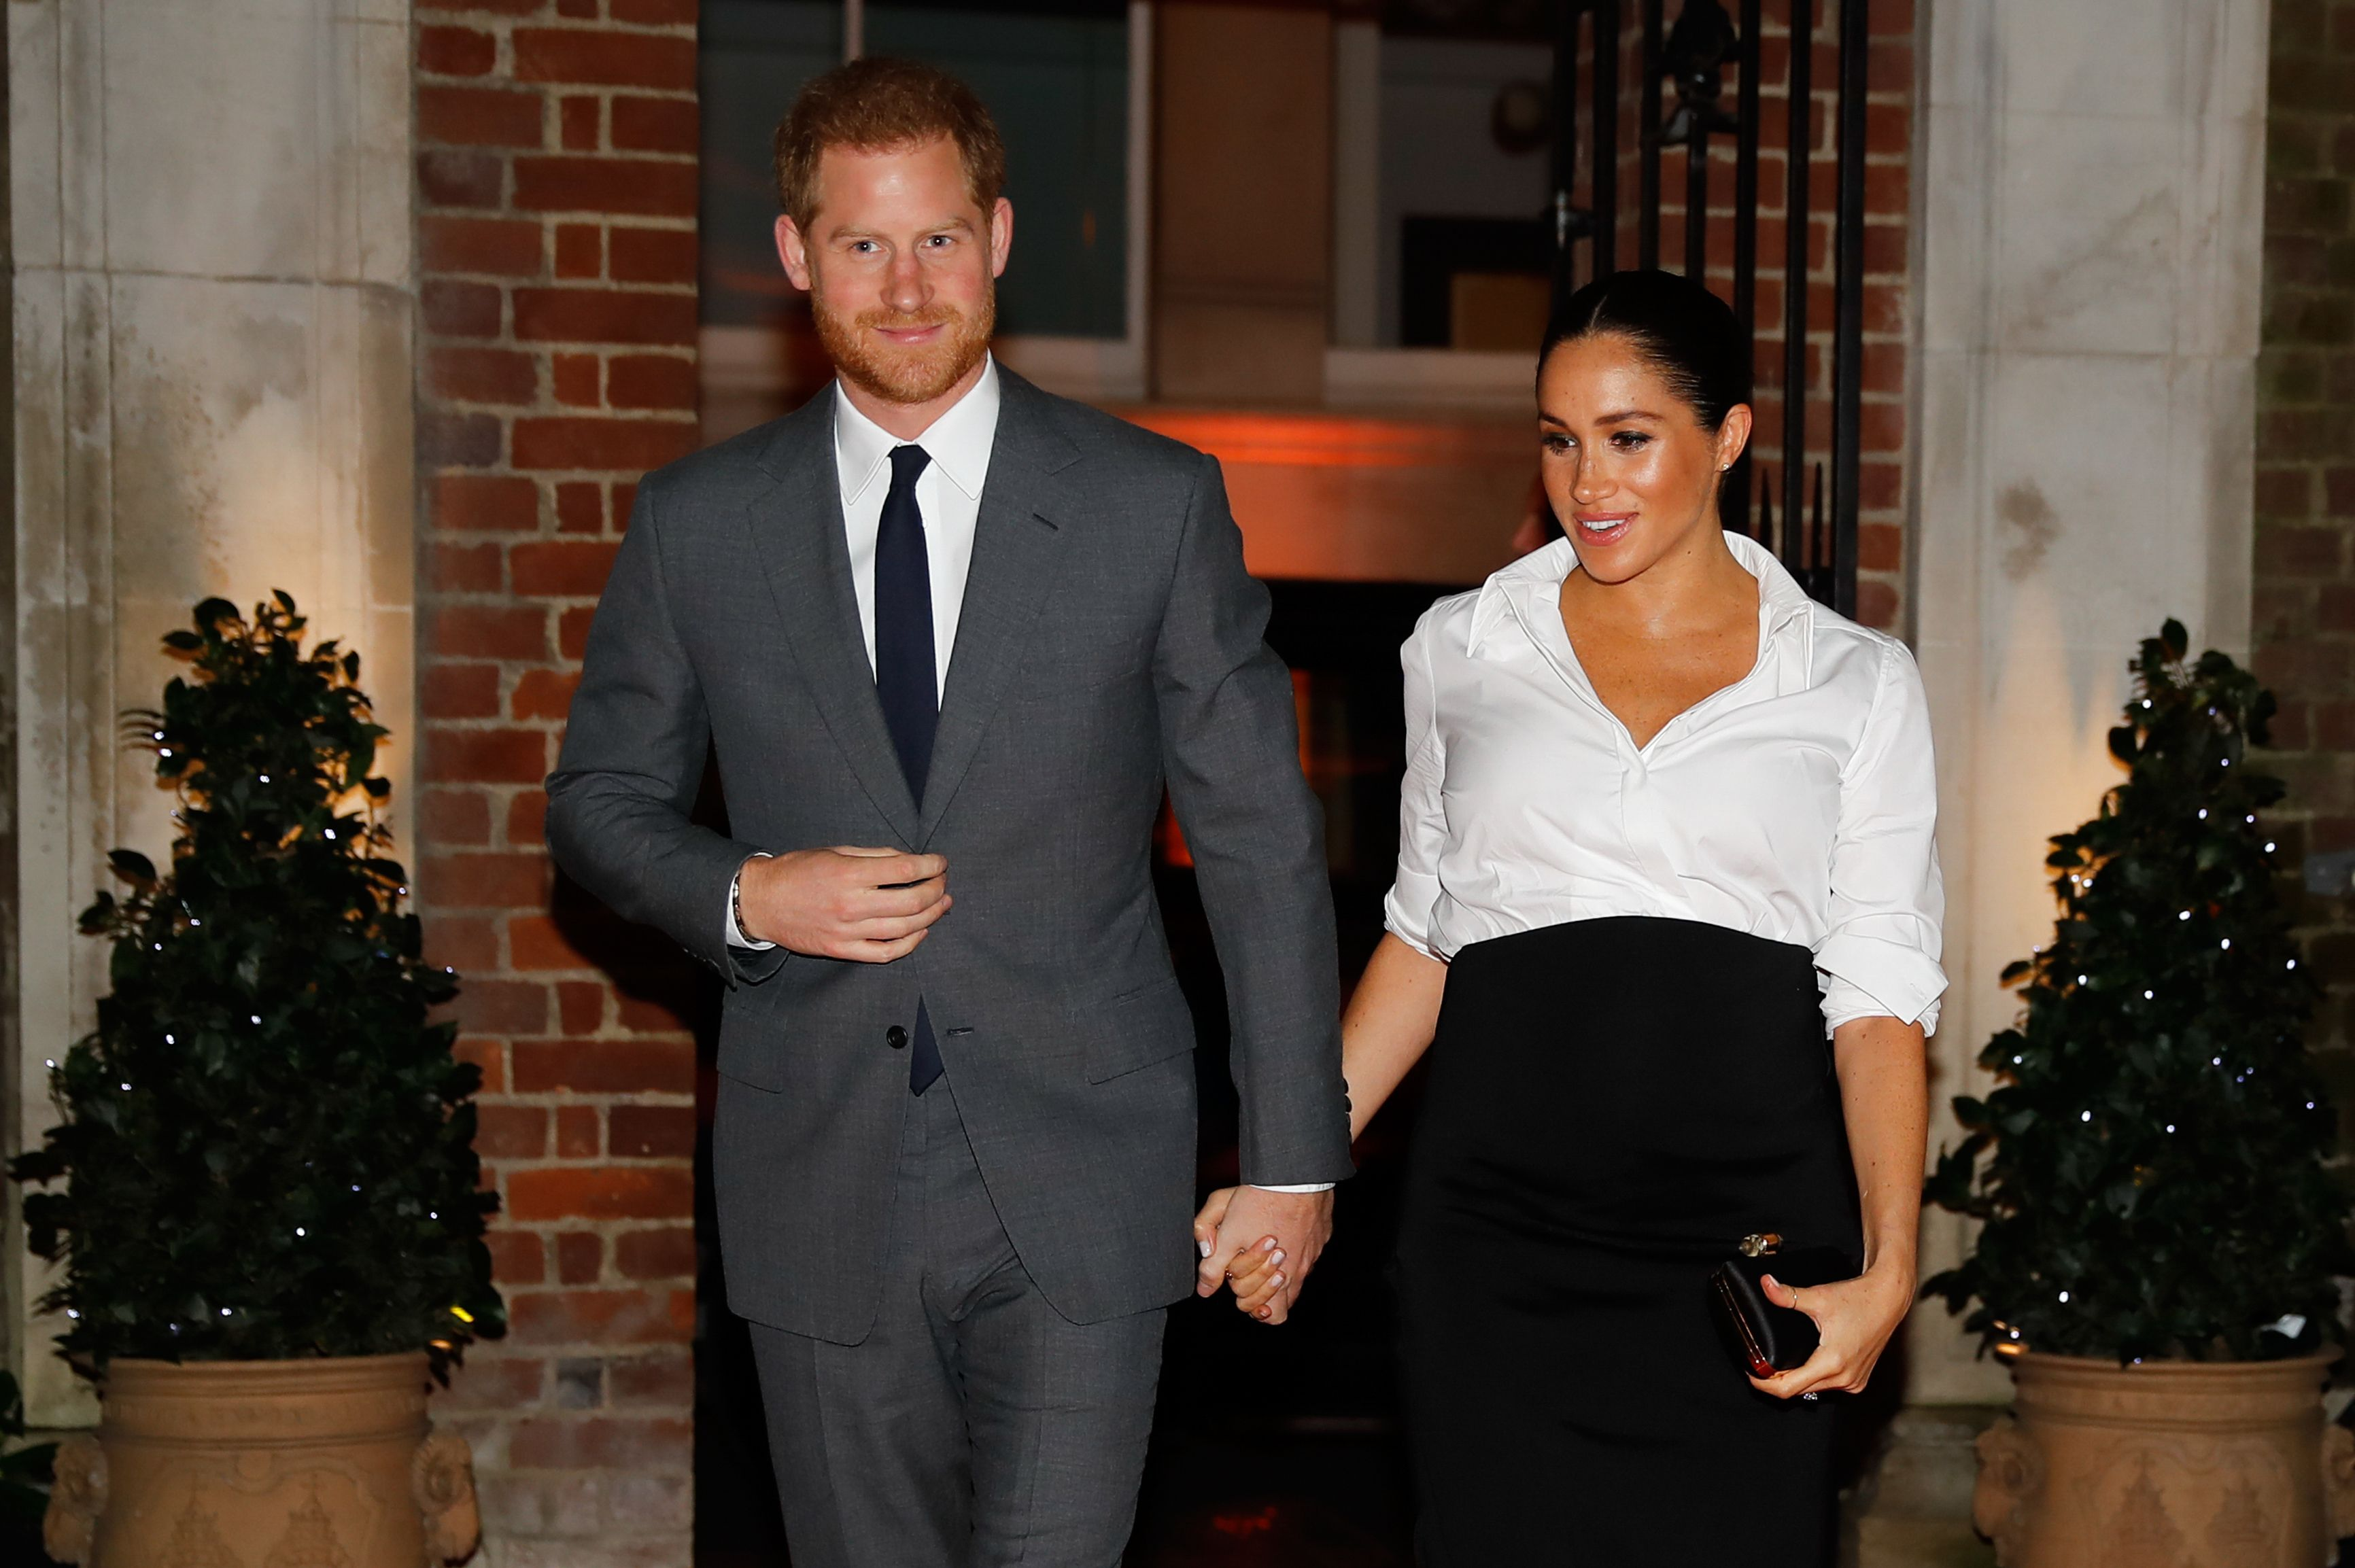 Why Meghan Markle and Prince Harry Will Keep Royal Baby's Birth Private